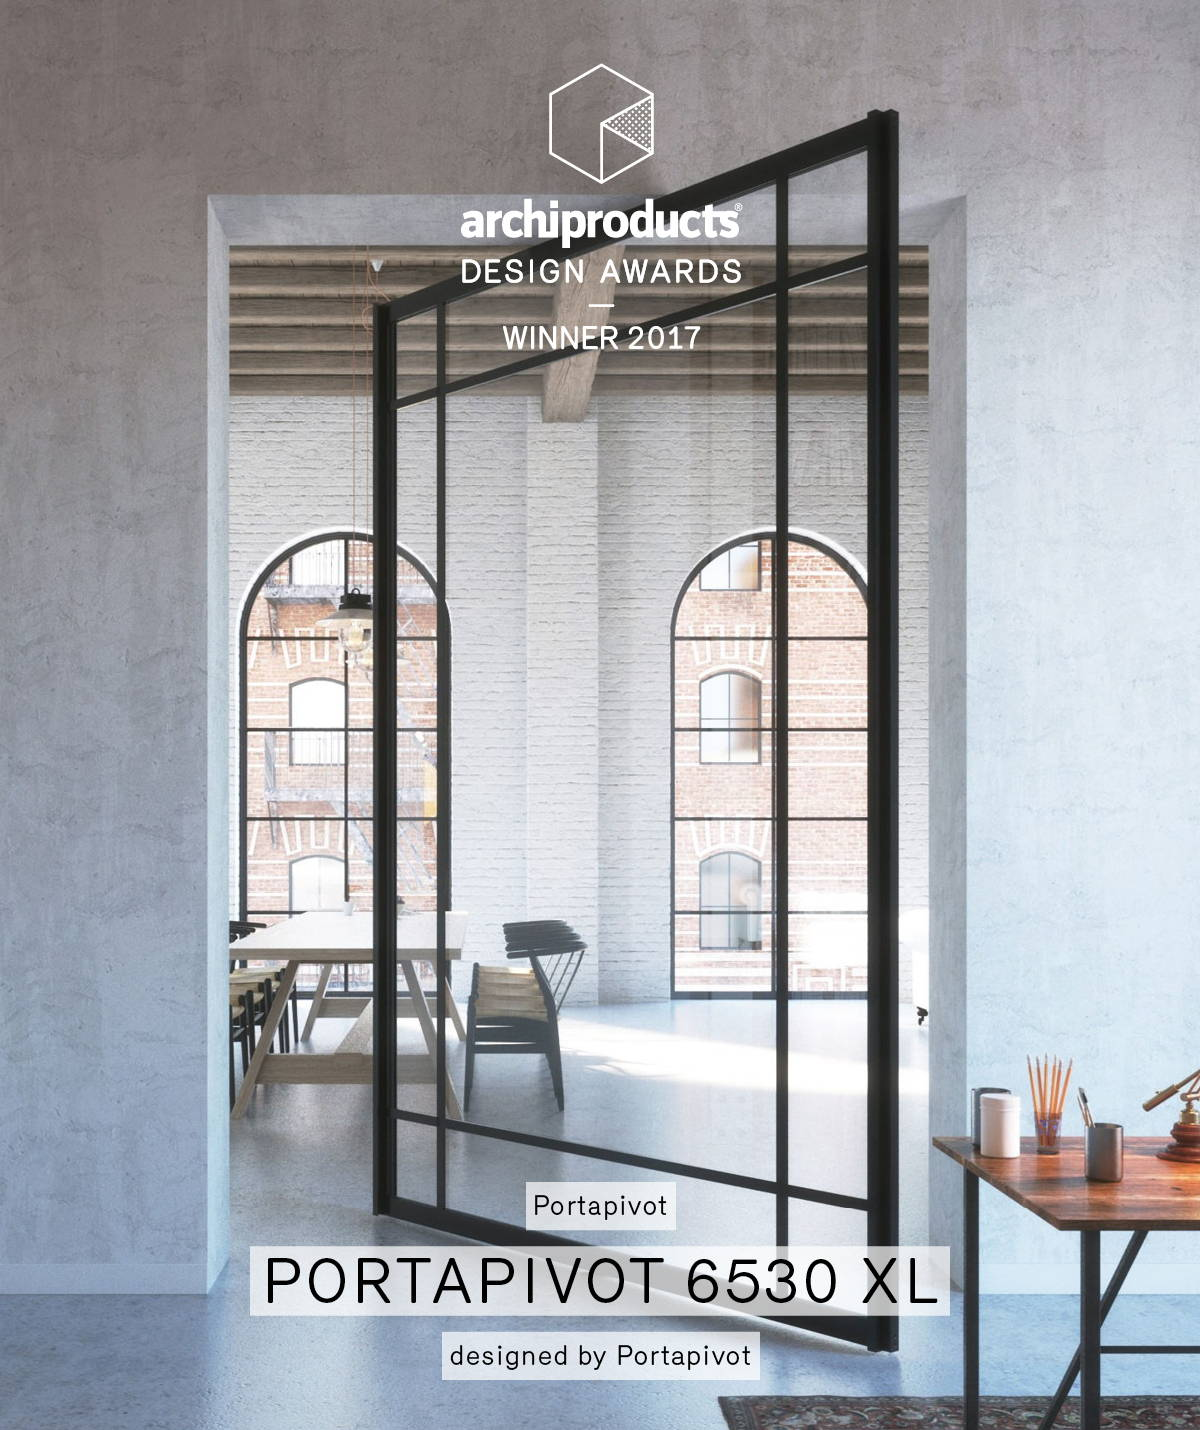 Portapivot 6530 XL archiproducts design awards winner 2017